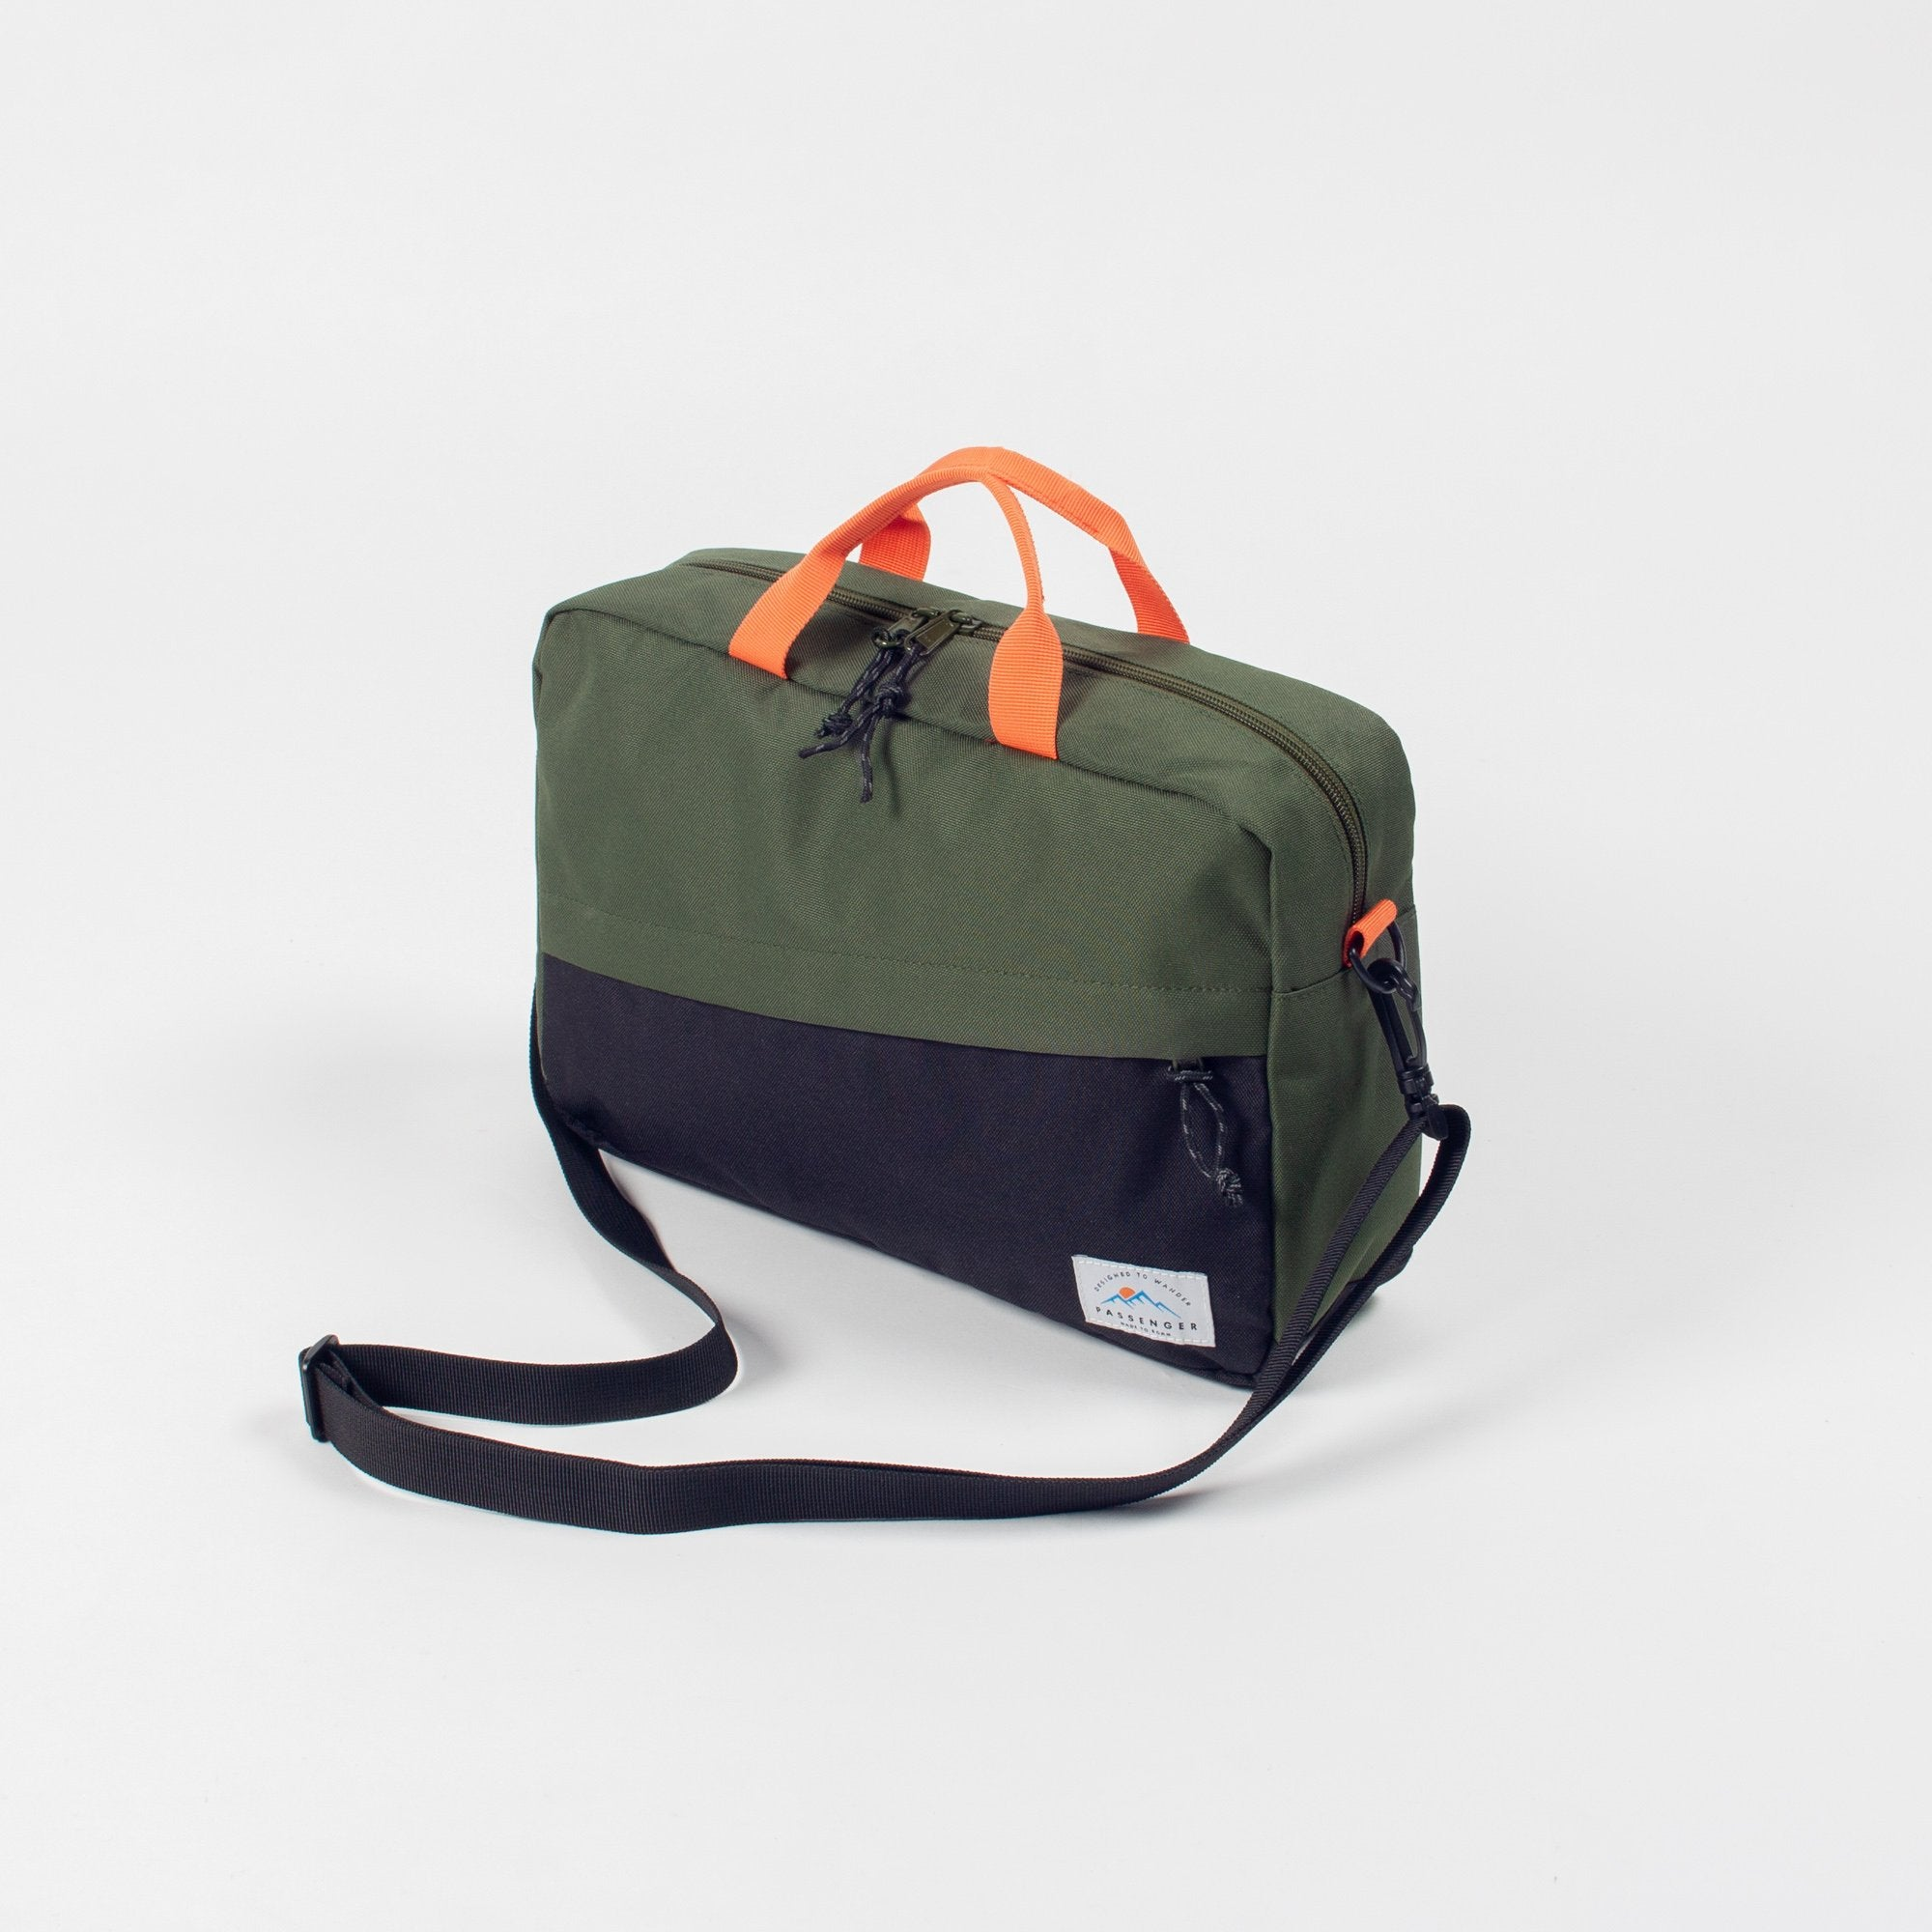 Ranger Essentials Pack - Olive/Black image 4